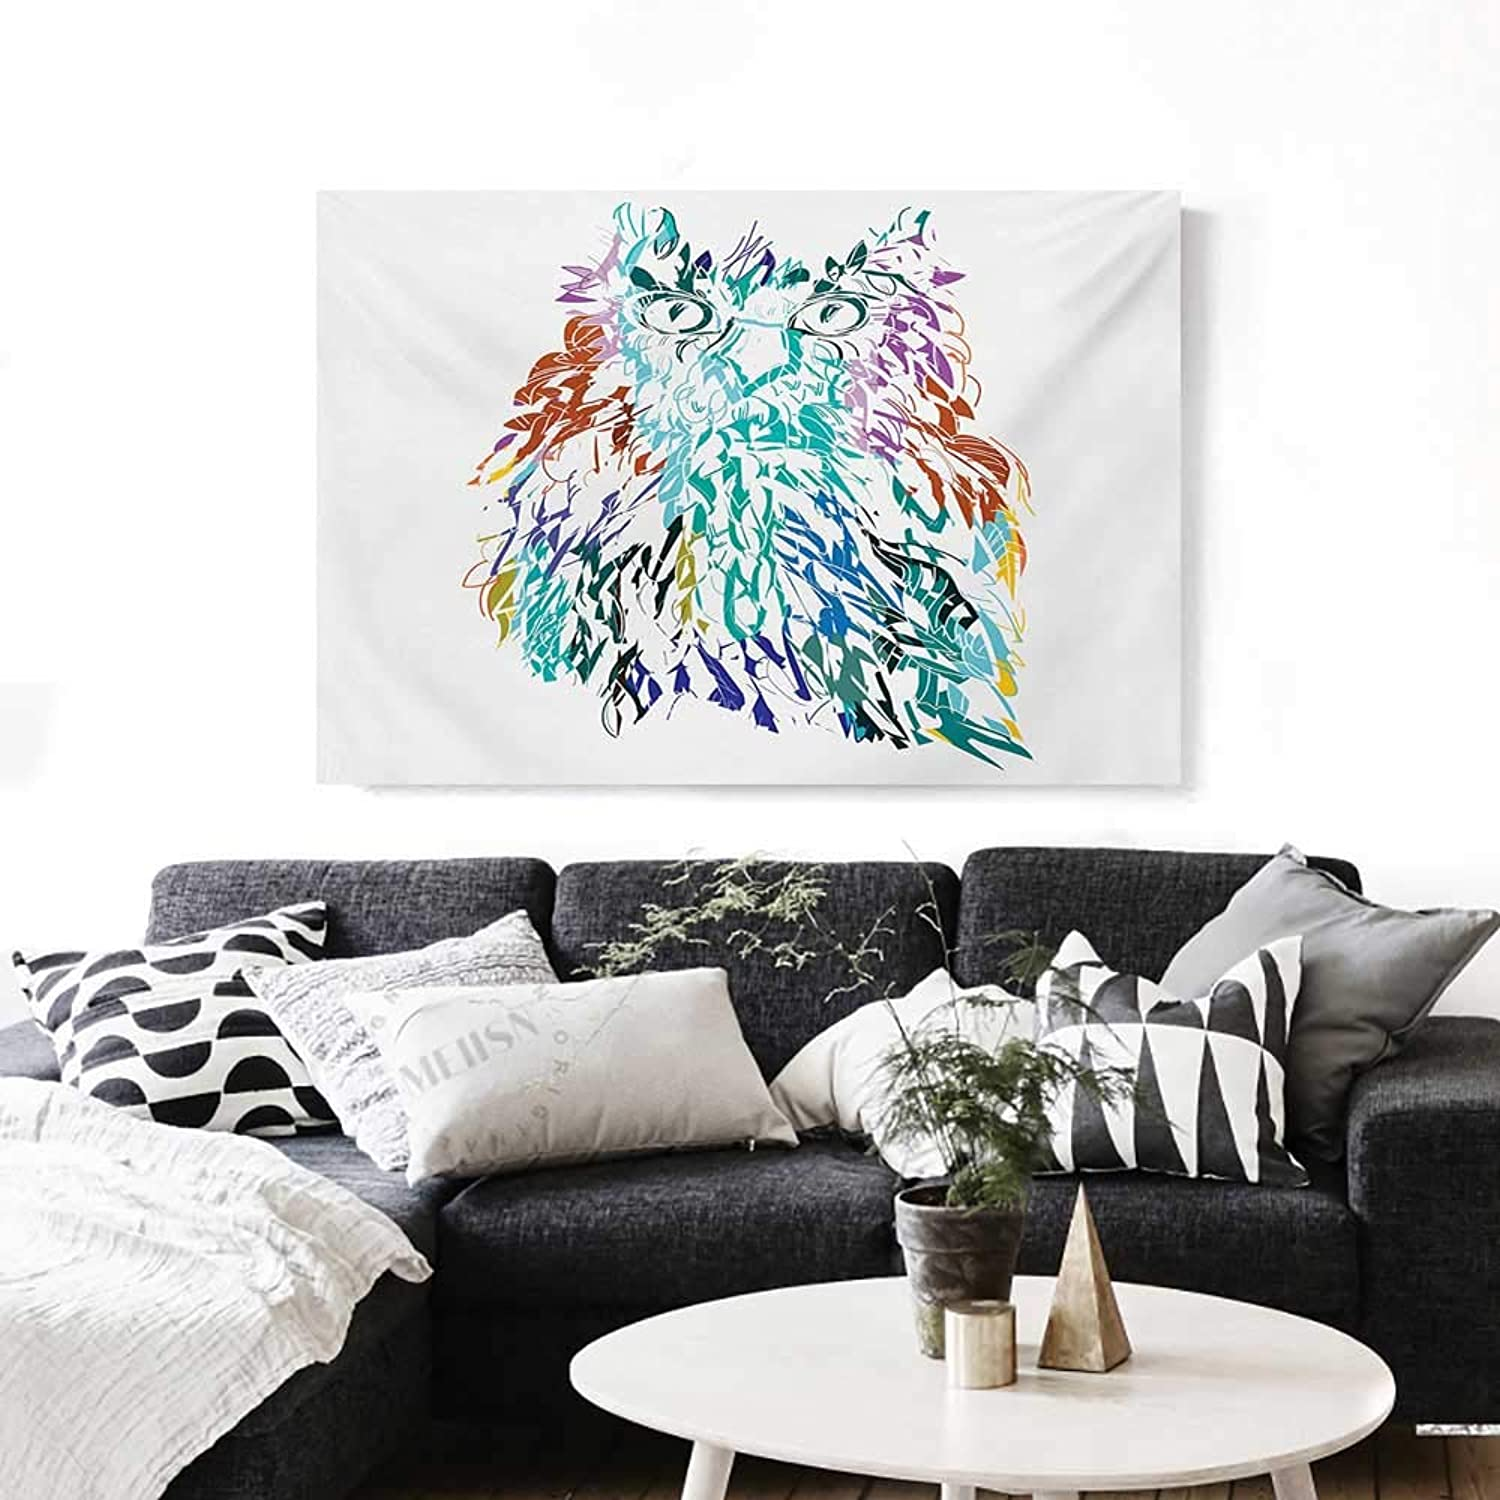 BlountDecor Owl Canvas Wall Art for Bedroom Home Decorations Owl with Fluffy Swollen colorful Feathers Large Eyes Vision Sage Camouflage Character Image Art Stickers 48 x32  Multi